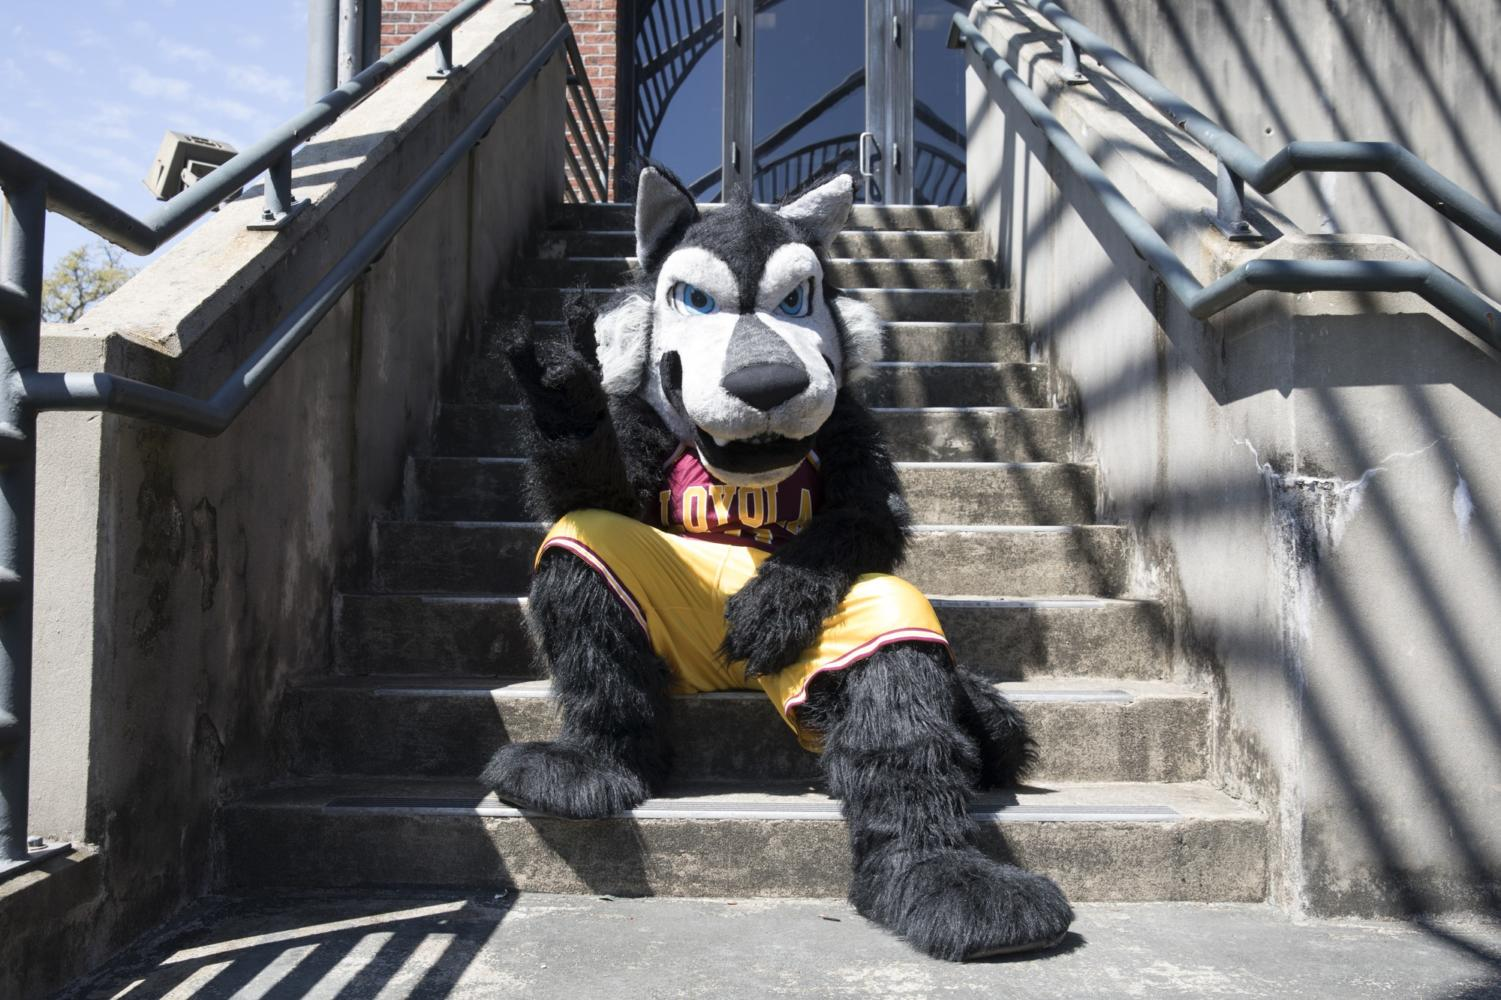 Havoc the Wolf has served as Loyola's mascot since 2006 after a re-branding by the Loyola New Orleans Athletic department. Havoc is present at games held on campus as well as university events. Photo credit: Cristian Orellana